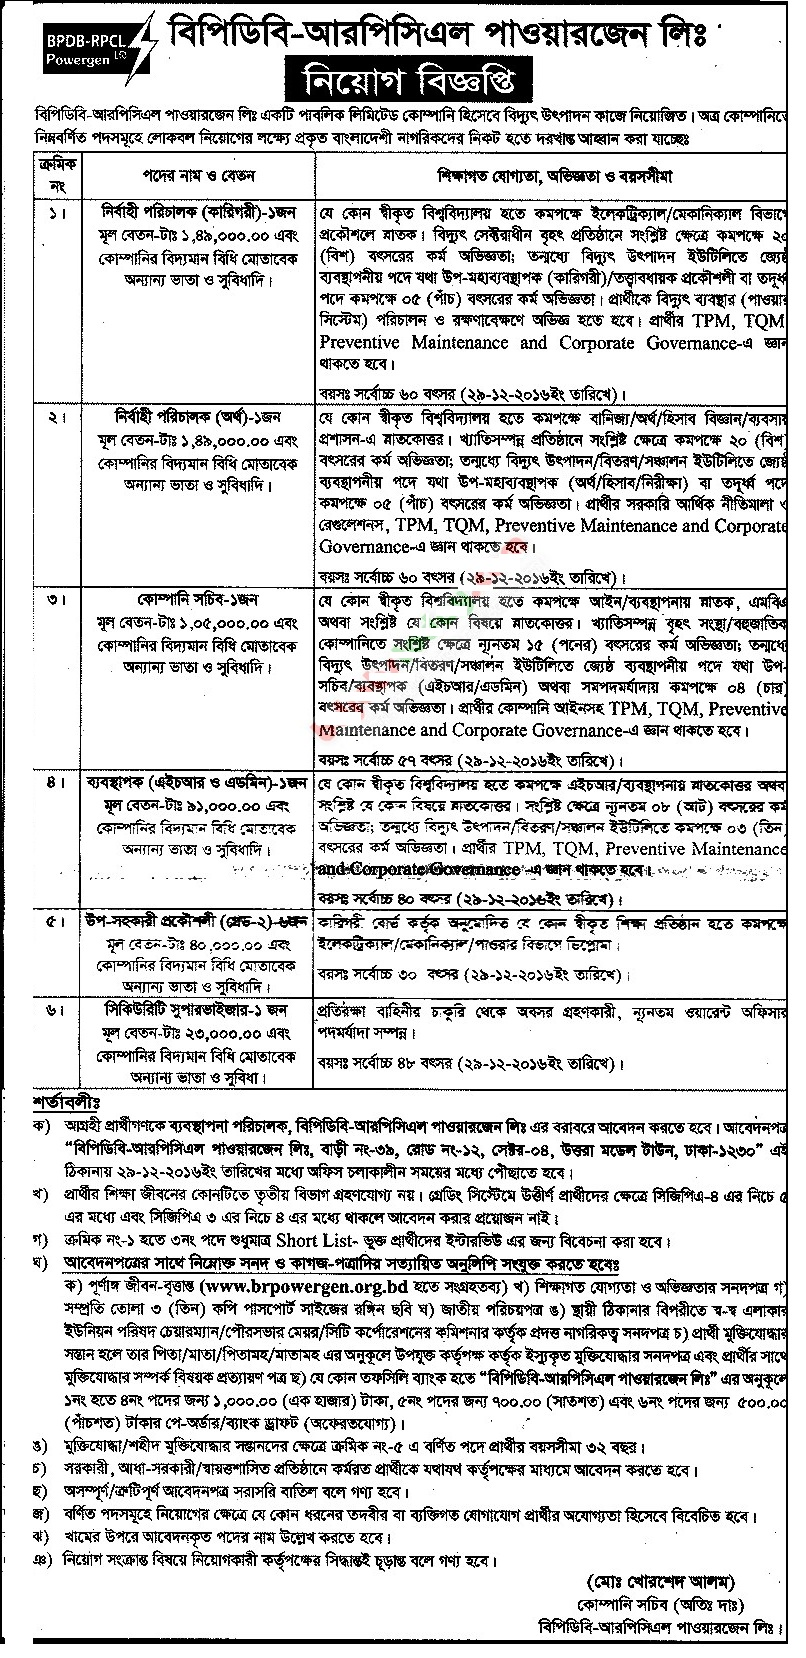 Bangladesh Power Development Board Job Circular 2016